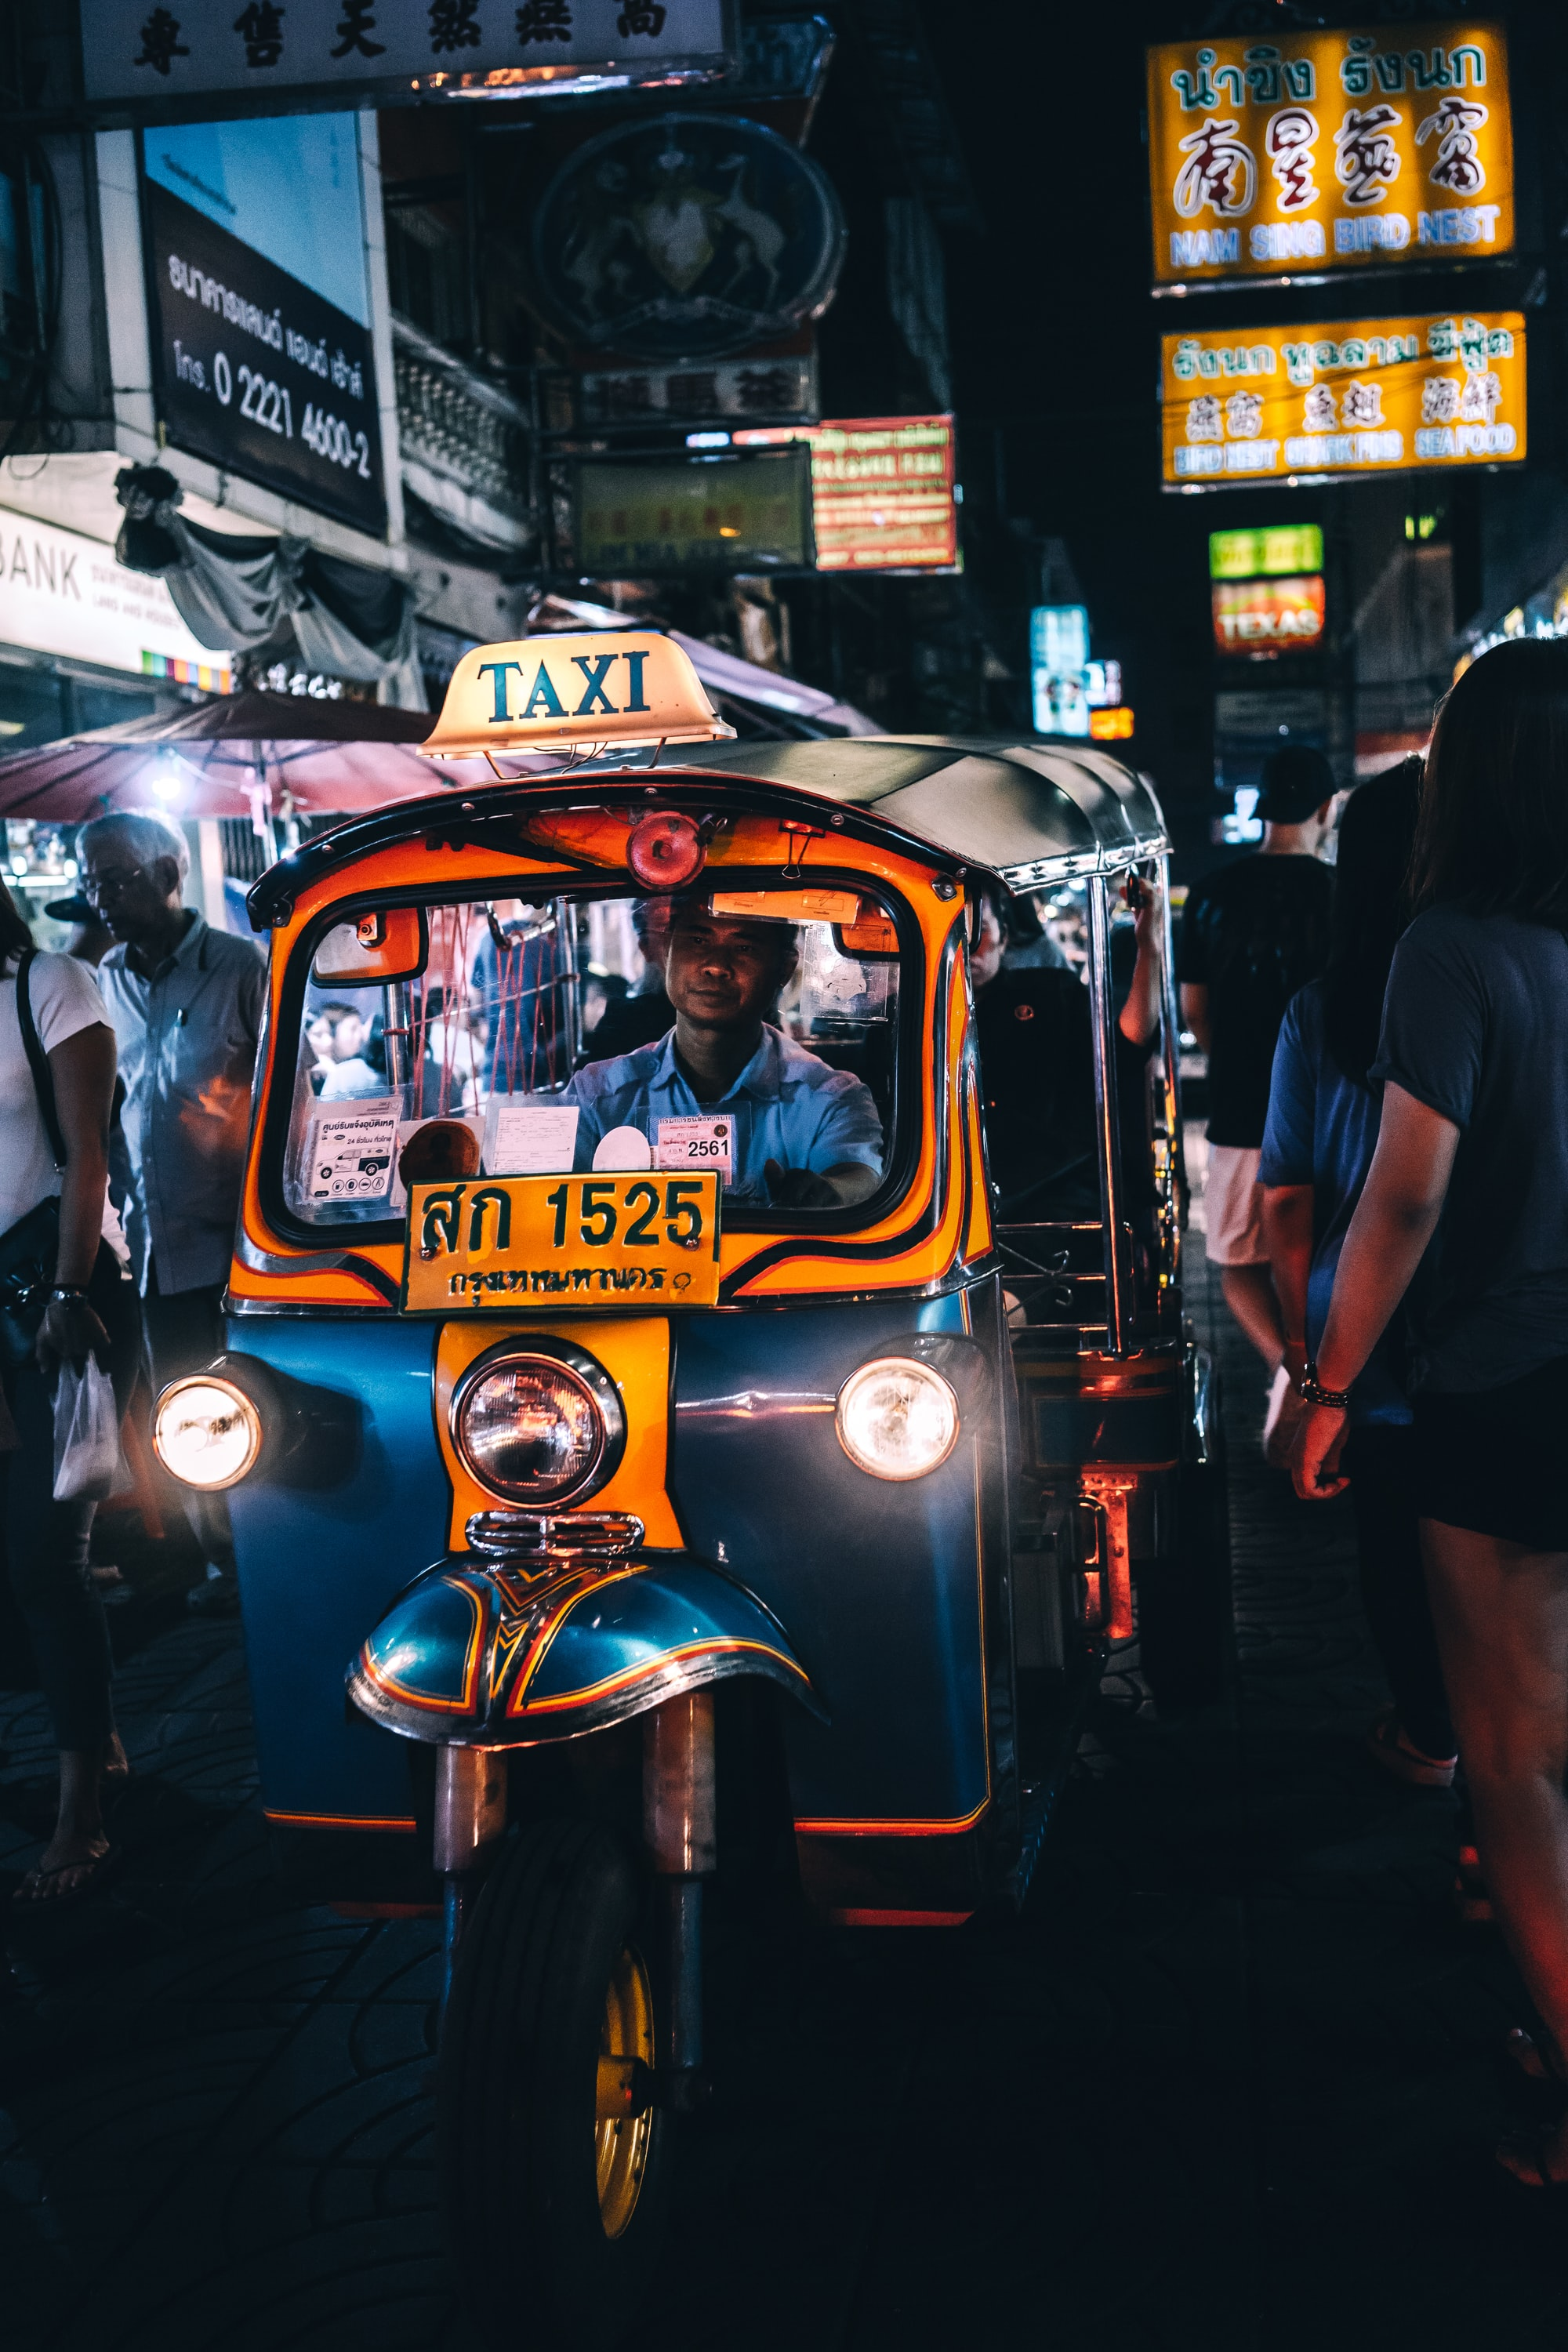 A Tuk-Tuk driver makes his way through a crowd in the busy Chinatown area of Bangkok, Thailand.